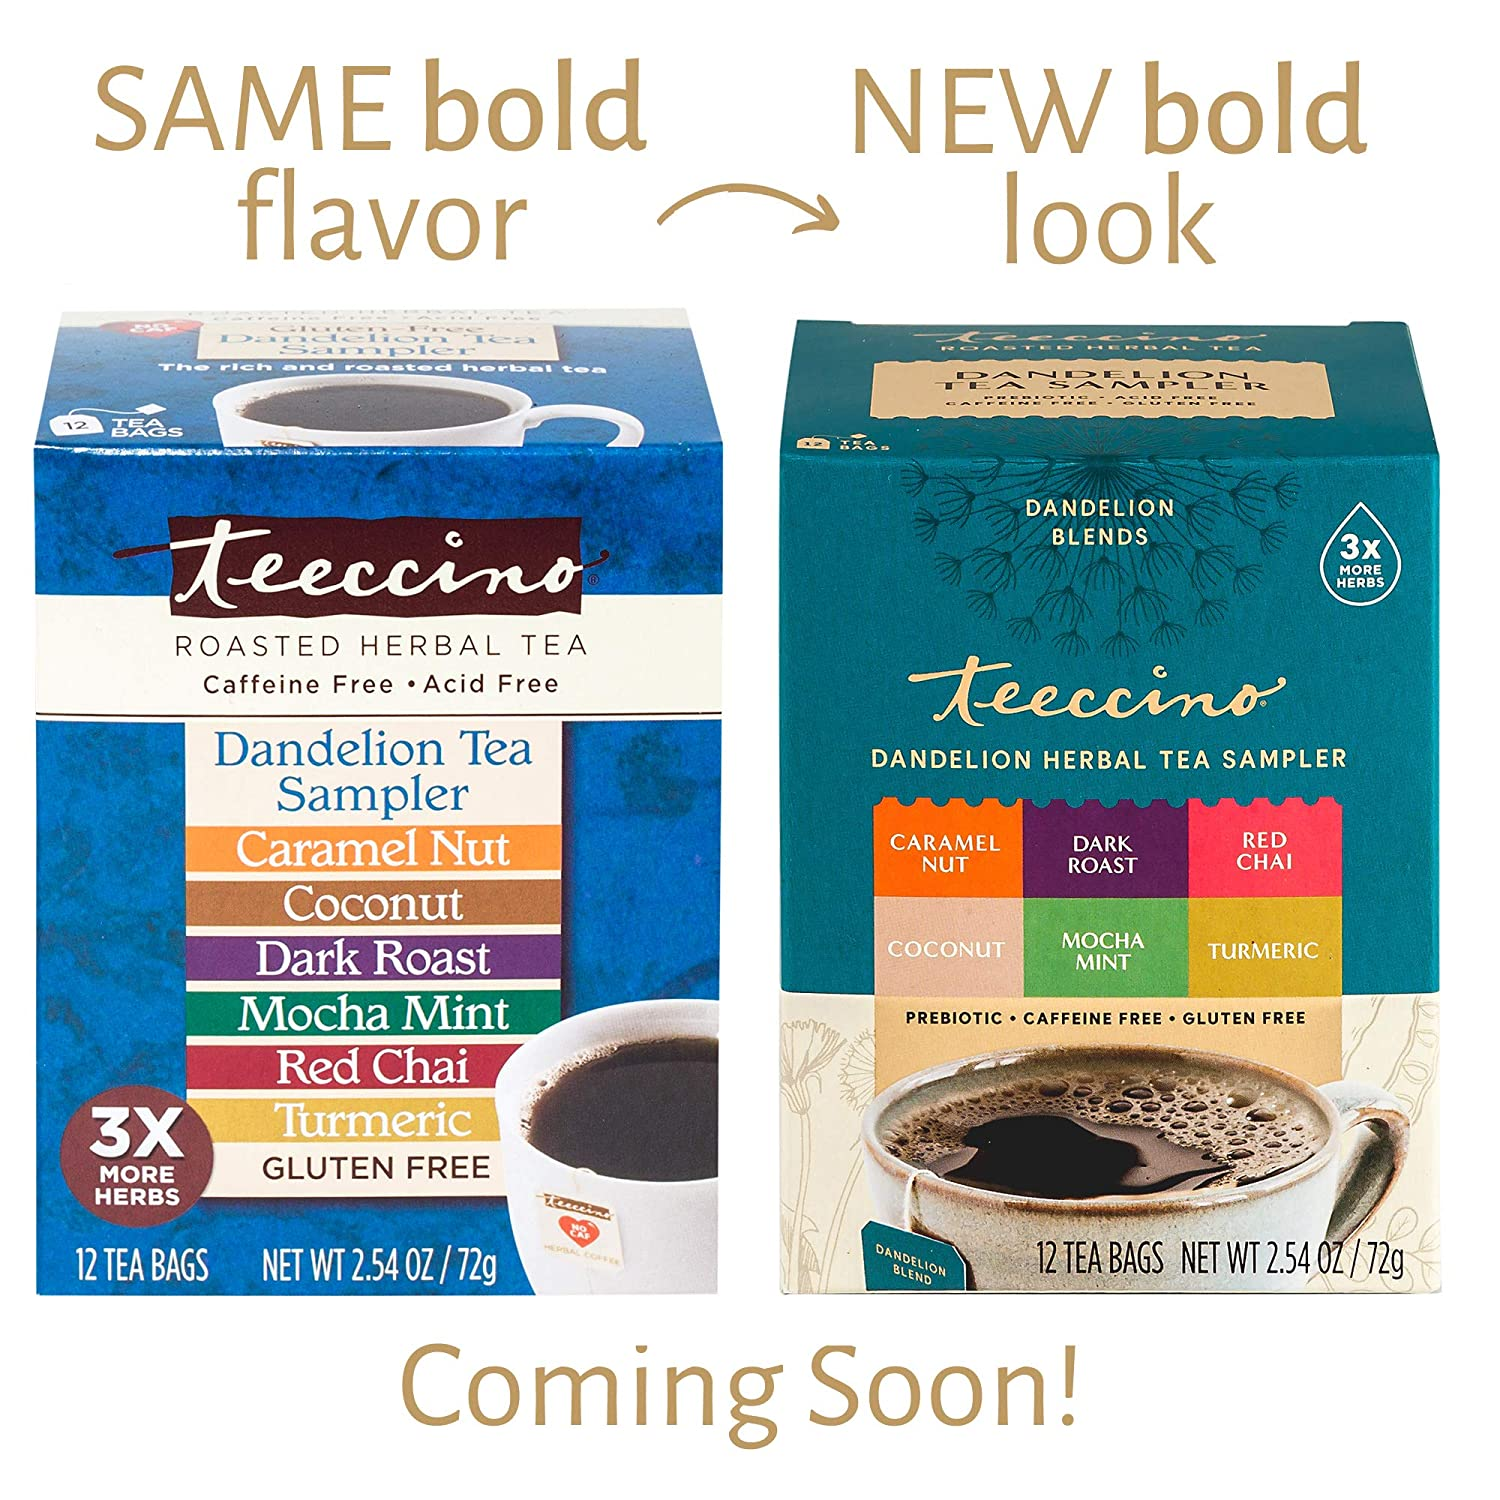 Teeccino Dandelion Tea Sampler – Caramel, Coconut, Dark Roast, Mocha Mint, Red Chai, Turmeric – Roasted Herbal Tea That's Caffeine Free & Prebiotic with Detoxifying Dandelion, 12 Tea Bags